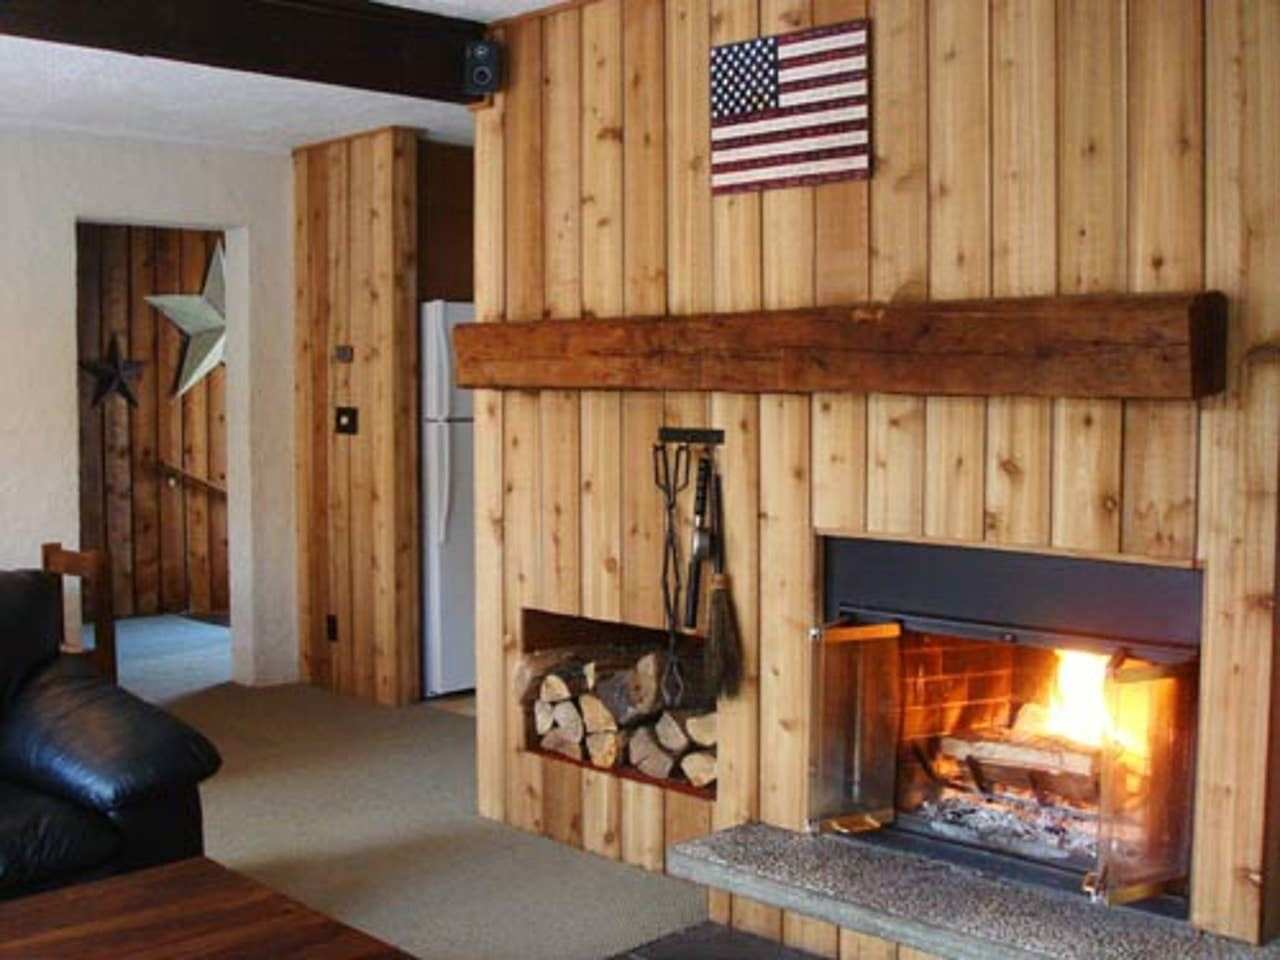 3 Bromley Forest Road, Winhall, VT 05340 - MLS#: 4802585